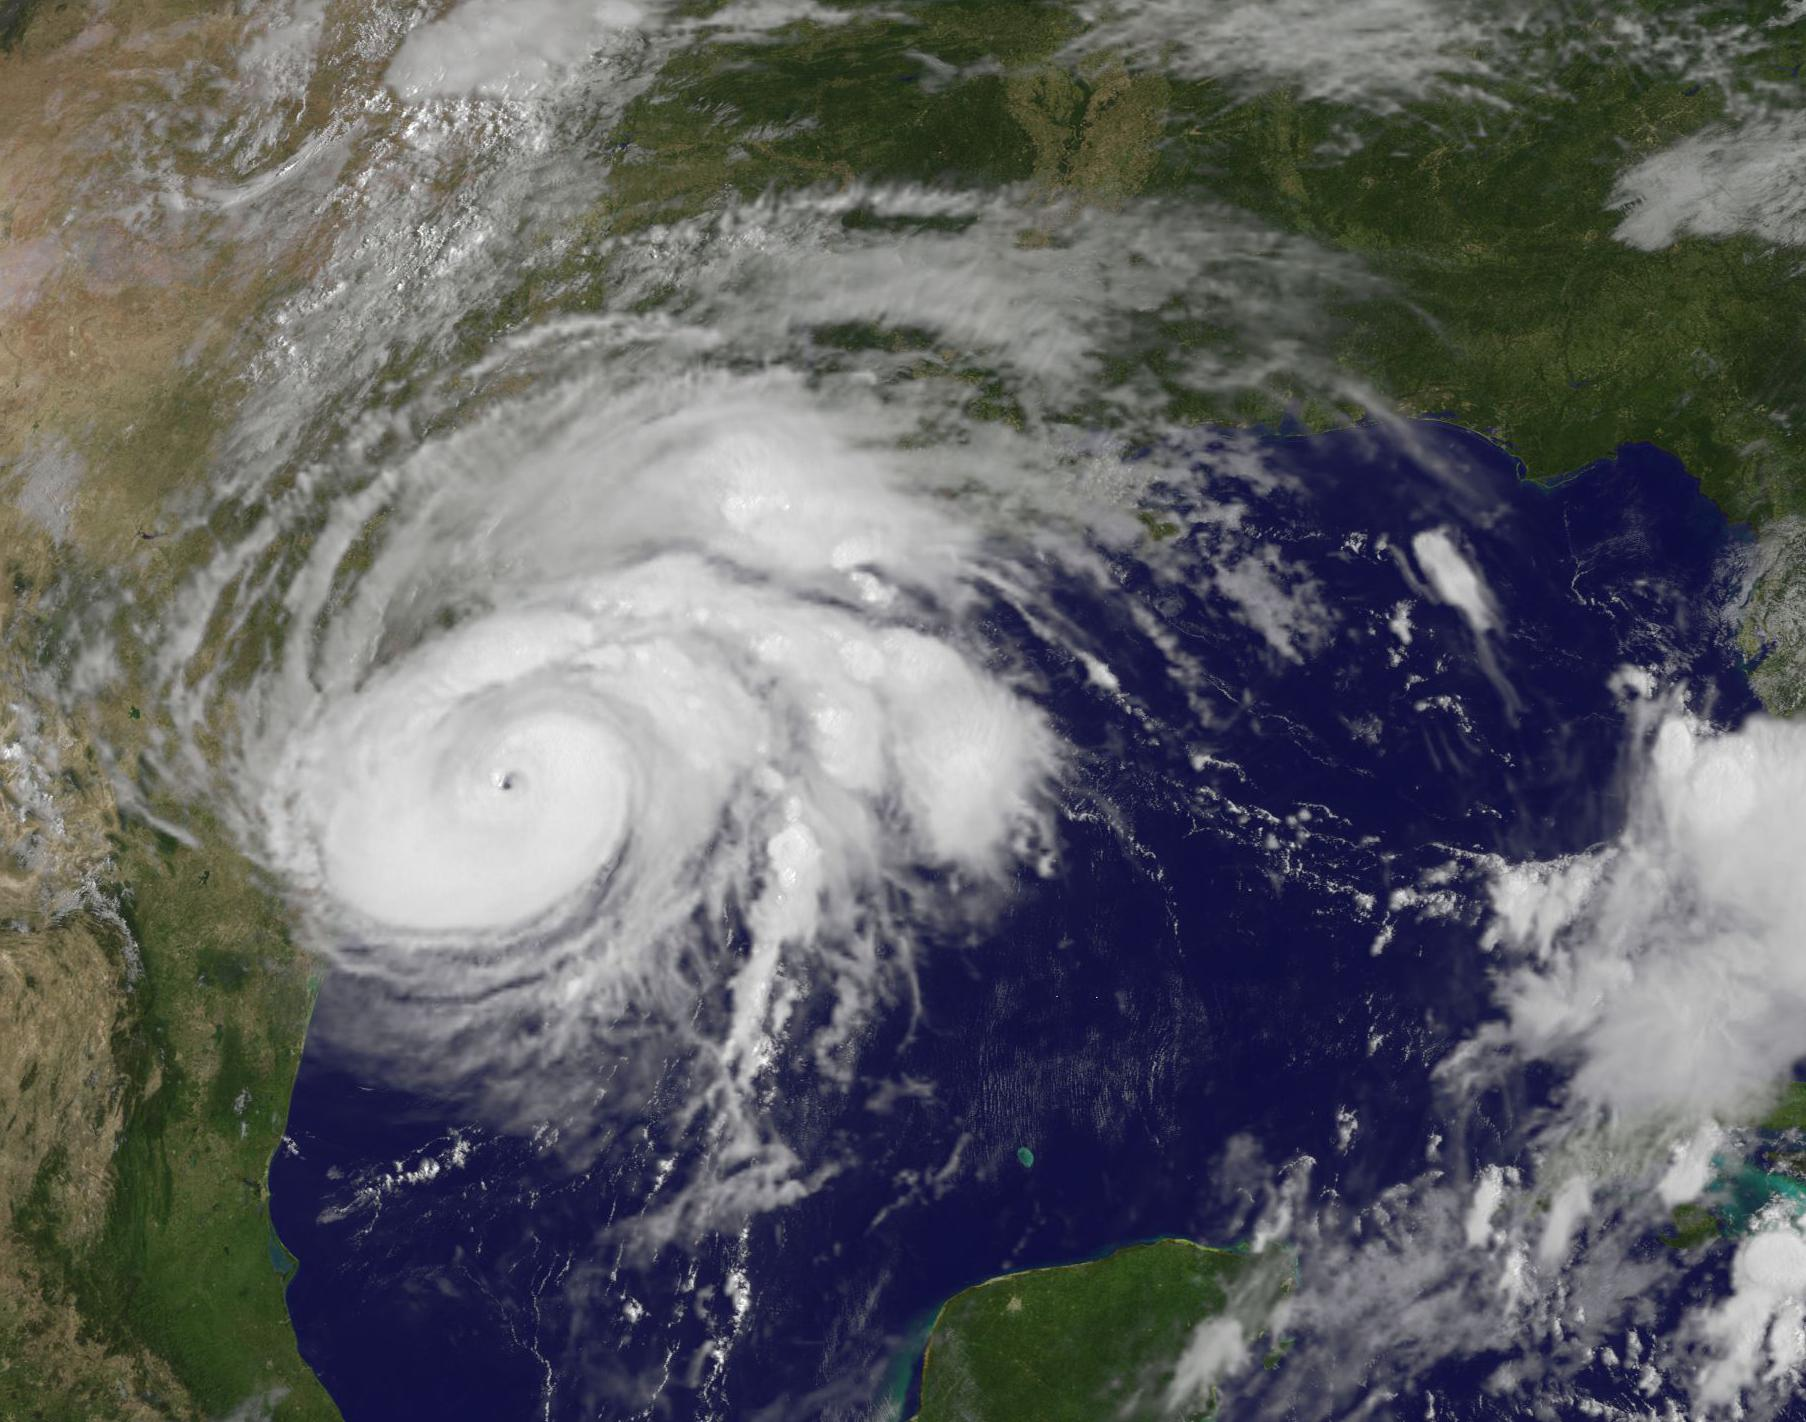 Image of Hurricane Harvey taken from NOAA's GOES East satellite on Aug. 25 at 10:07 a.m. EDT Credits: NASA/NOAA GOES Project